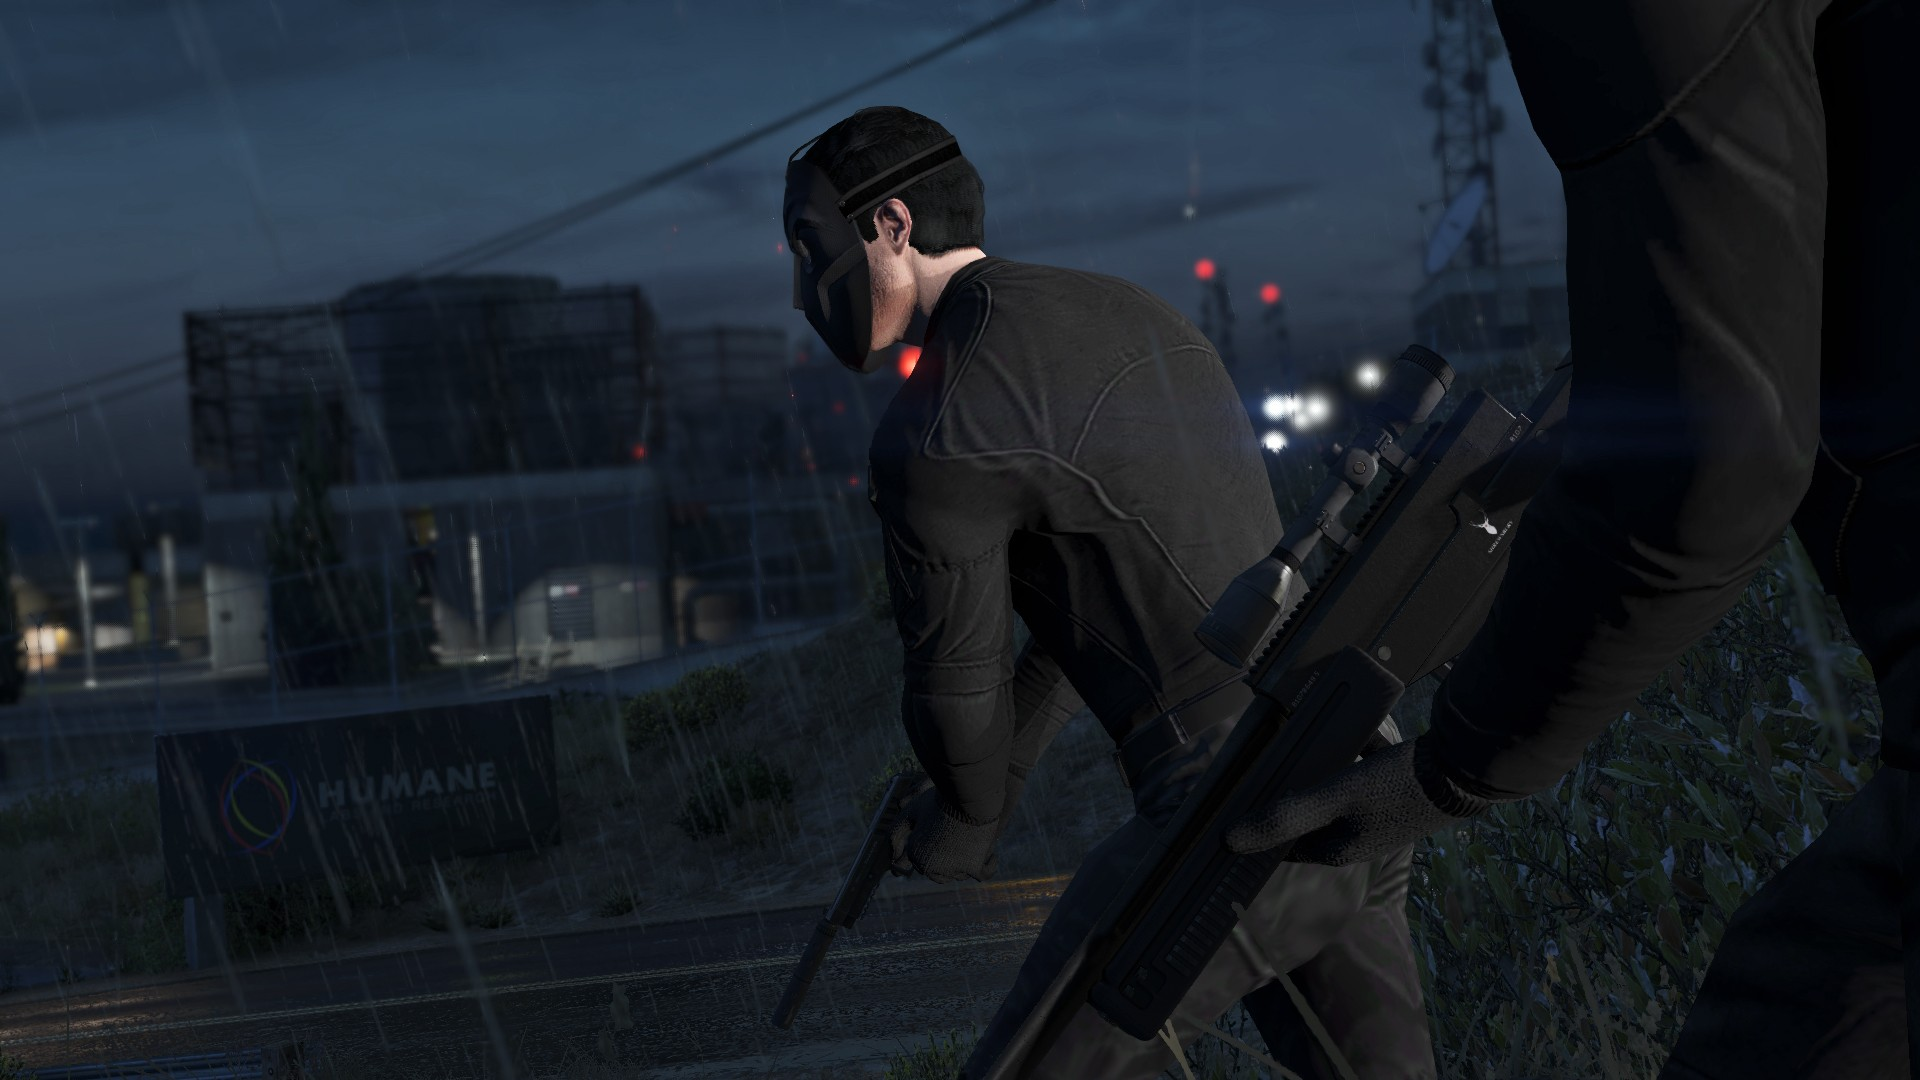 Grand Theft Auto 5 Gets Online Heists on March 10, PC